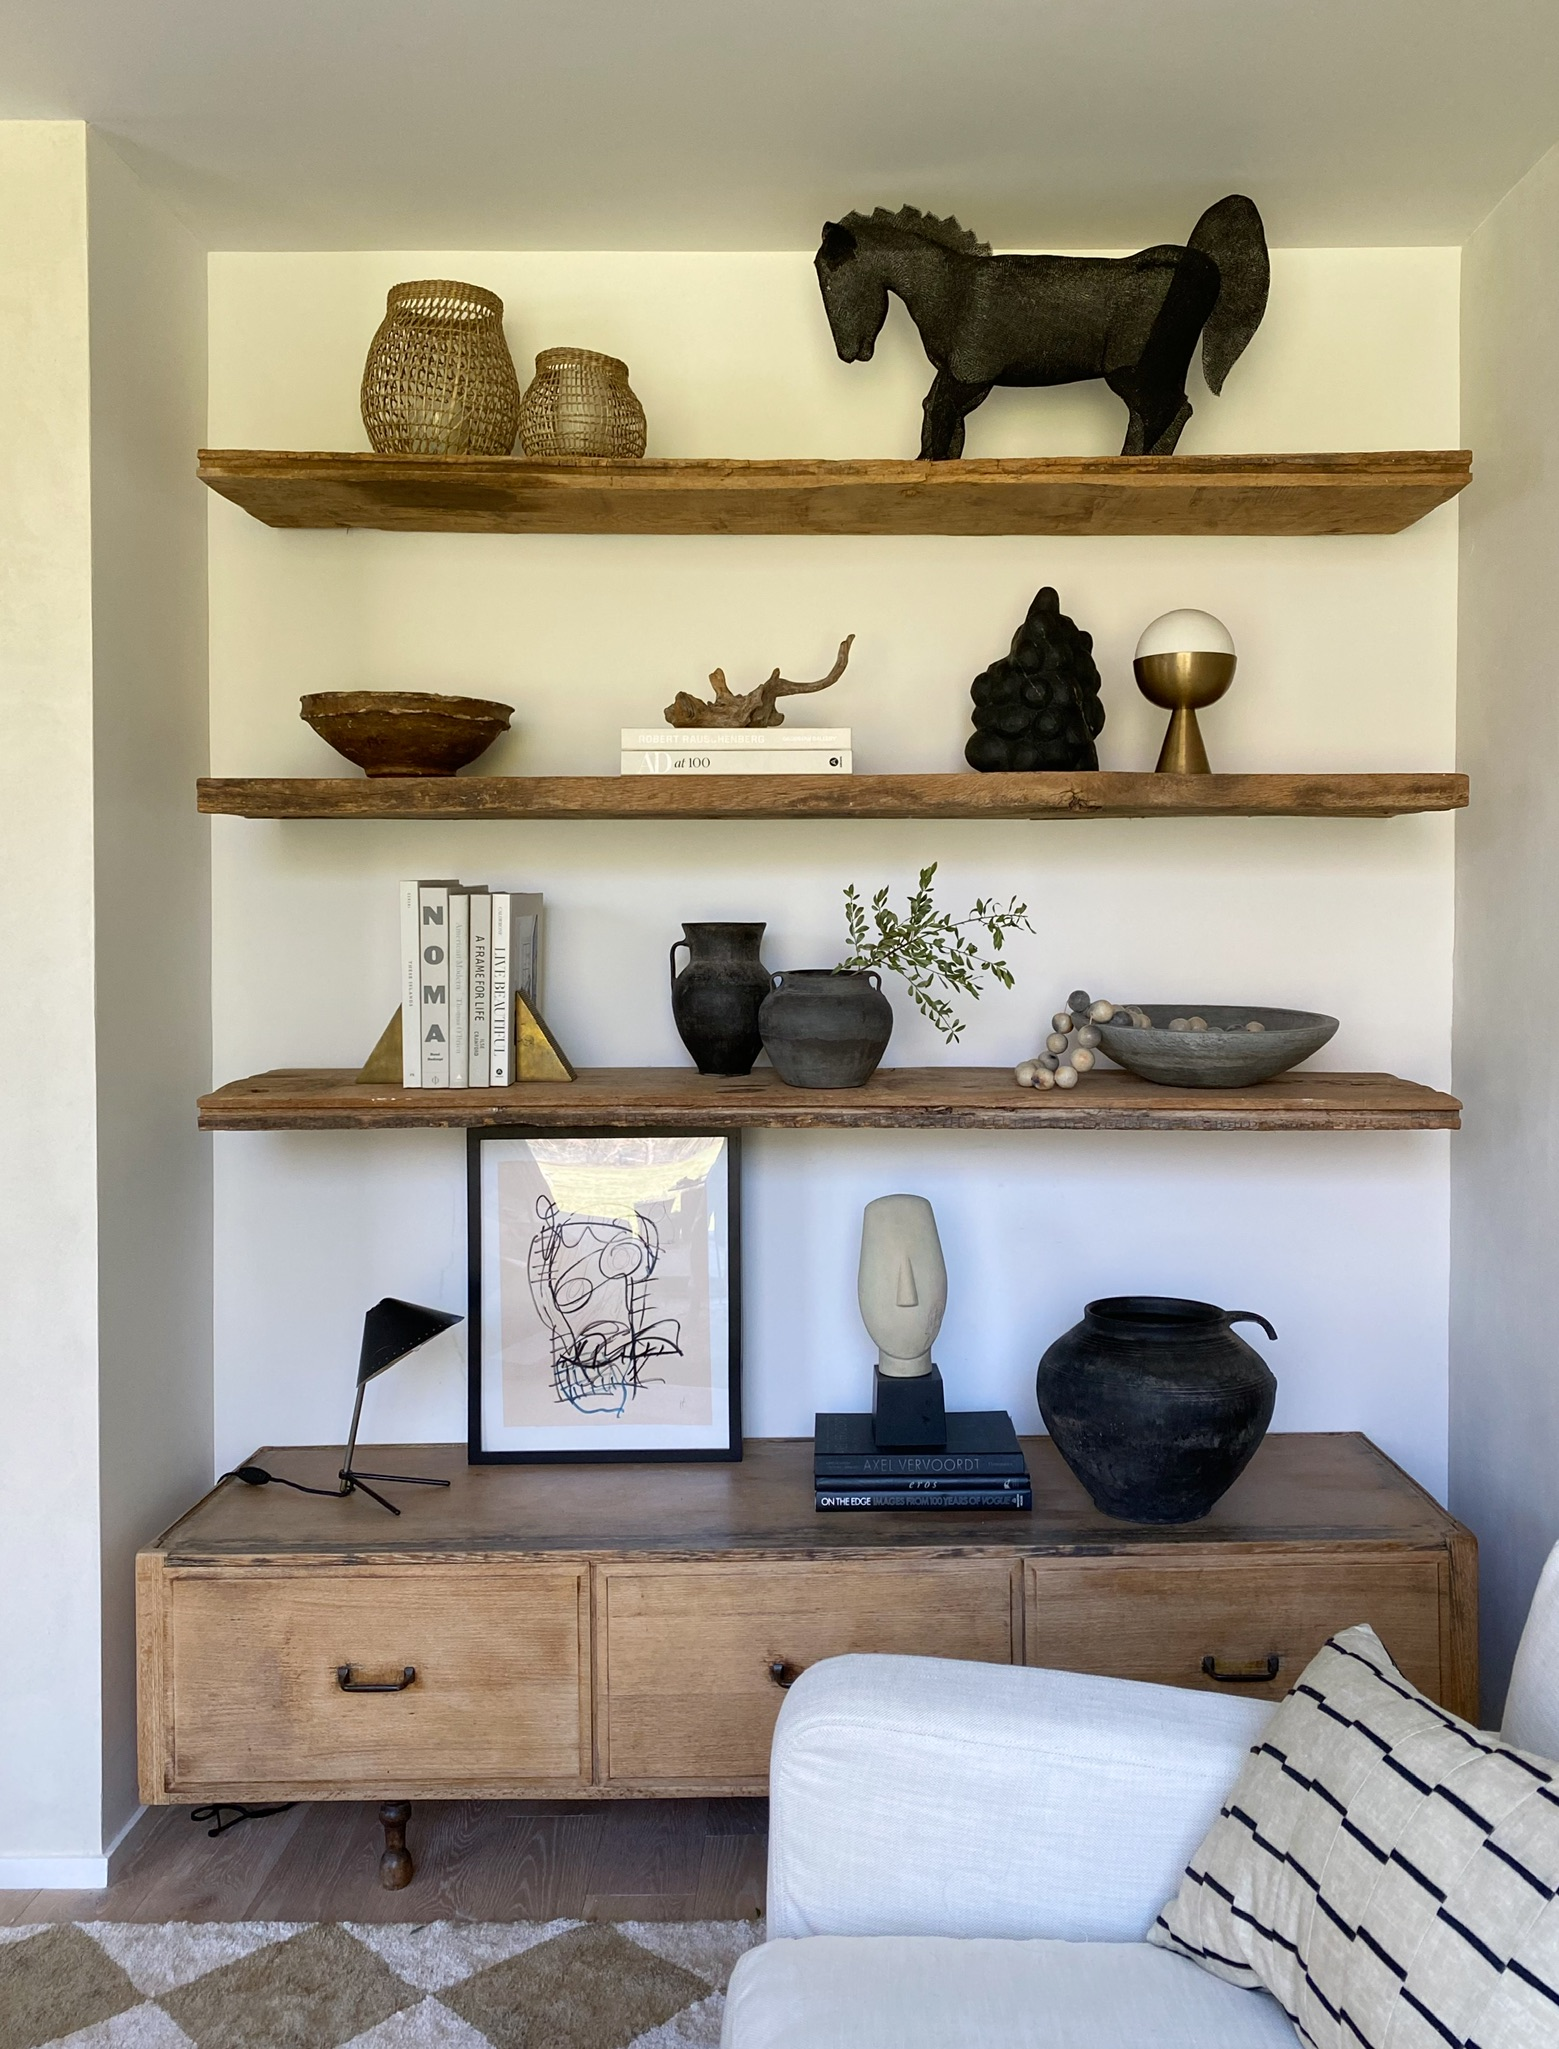 Stay Home, Stay Inspired — Shelf Styling 101